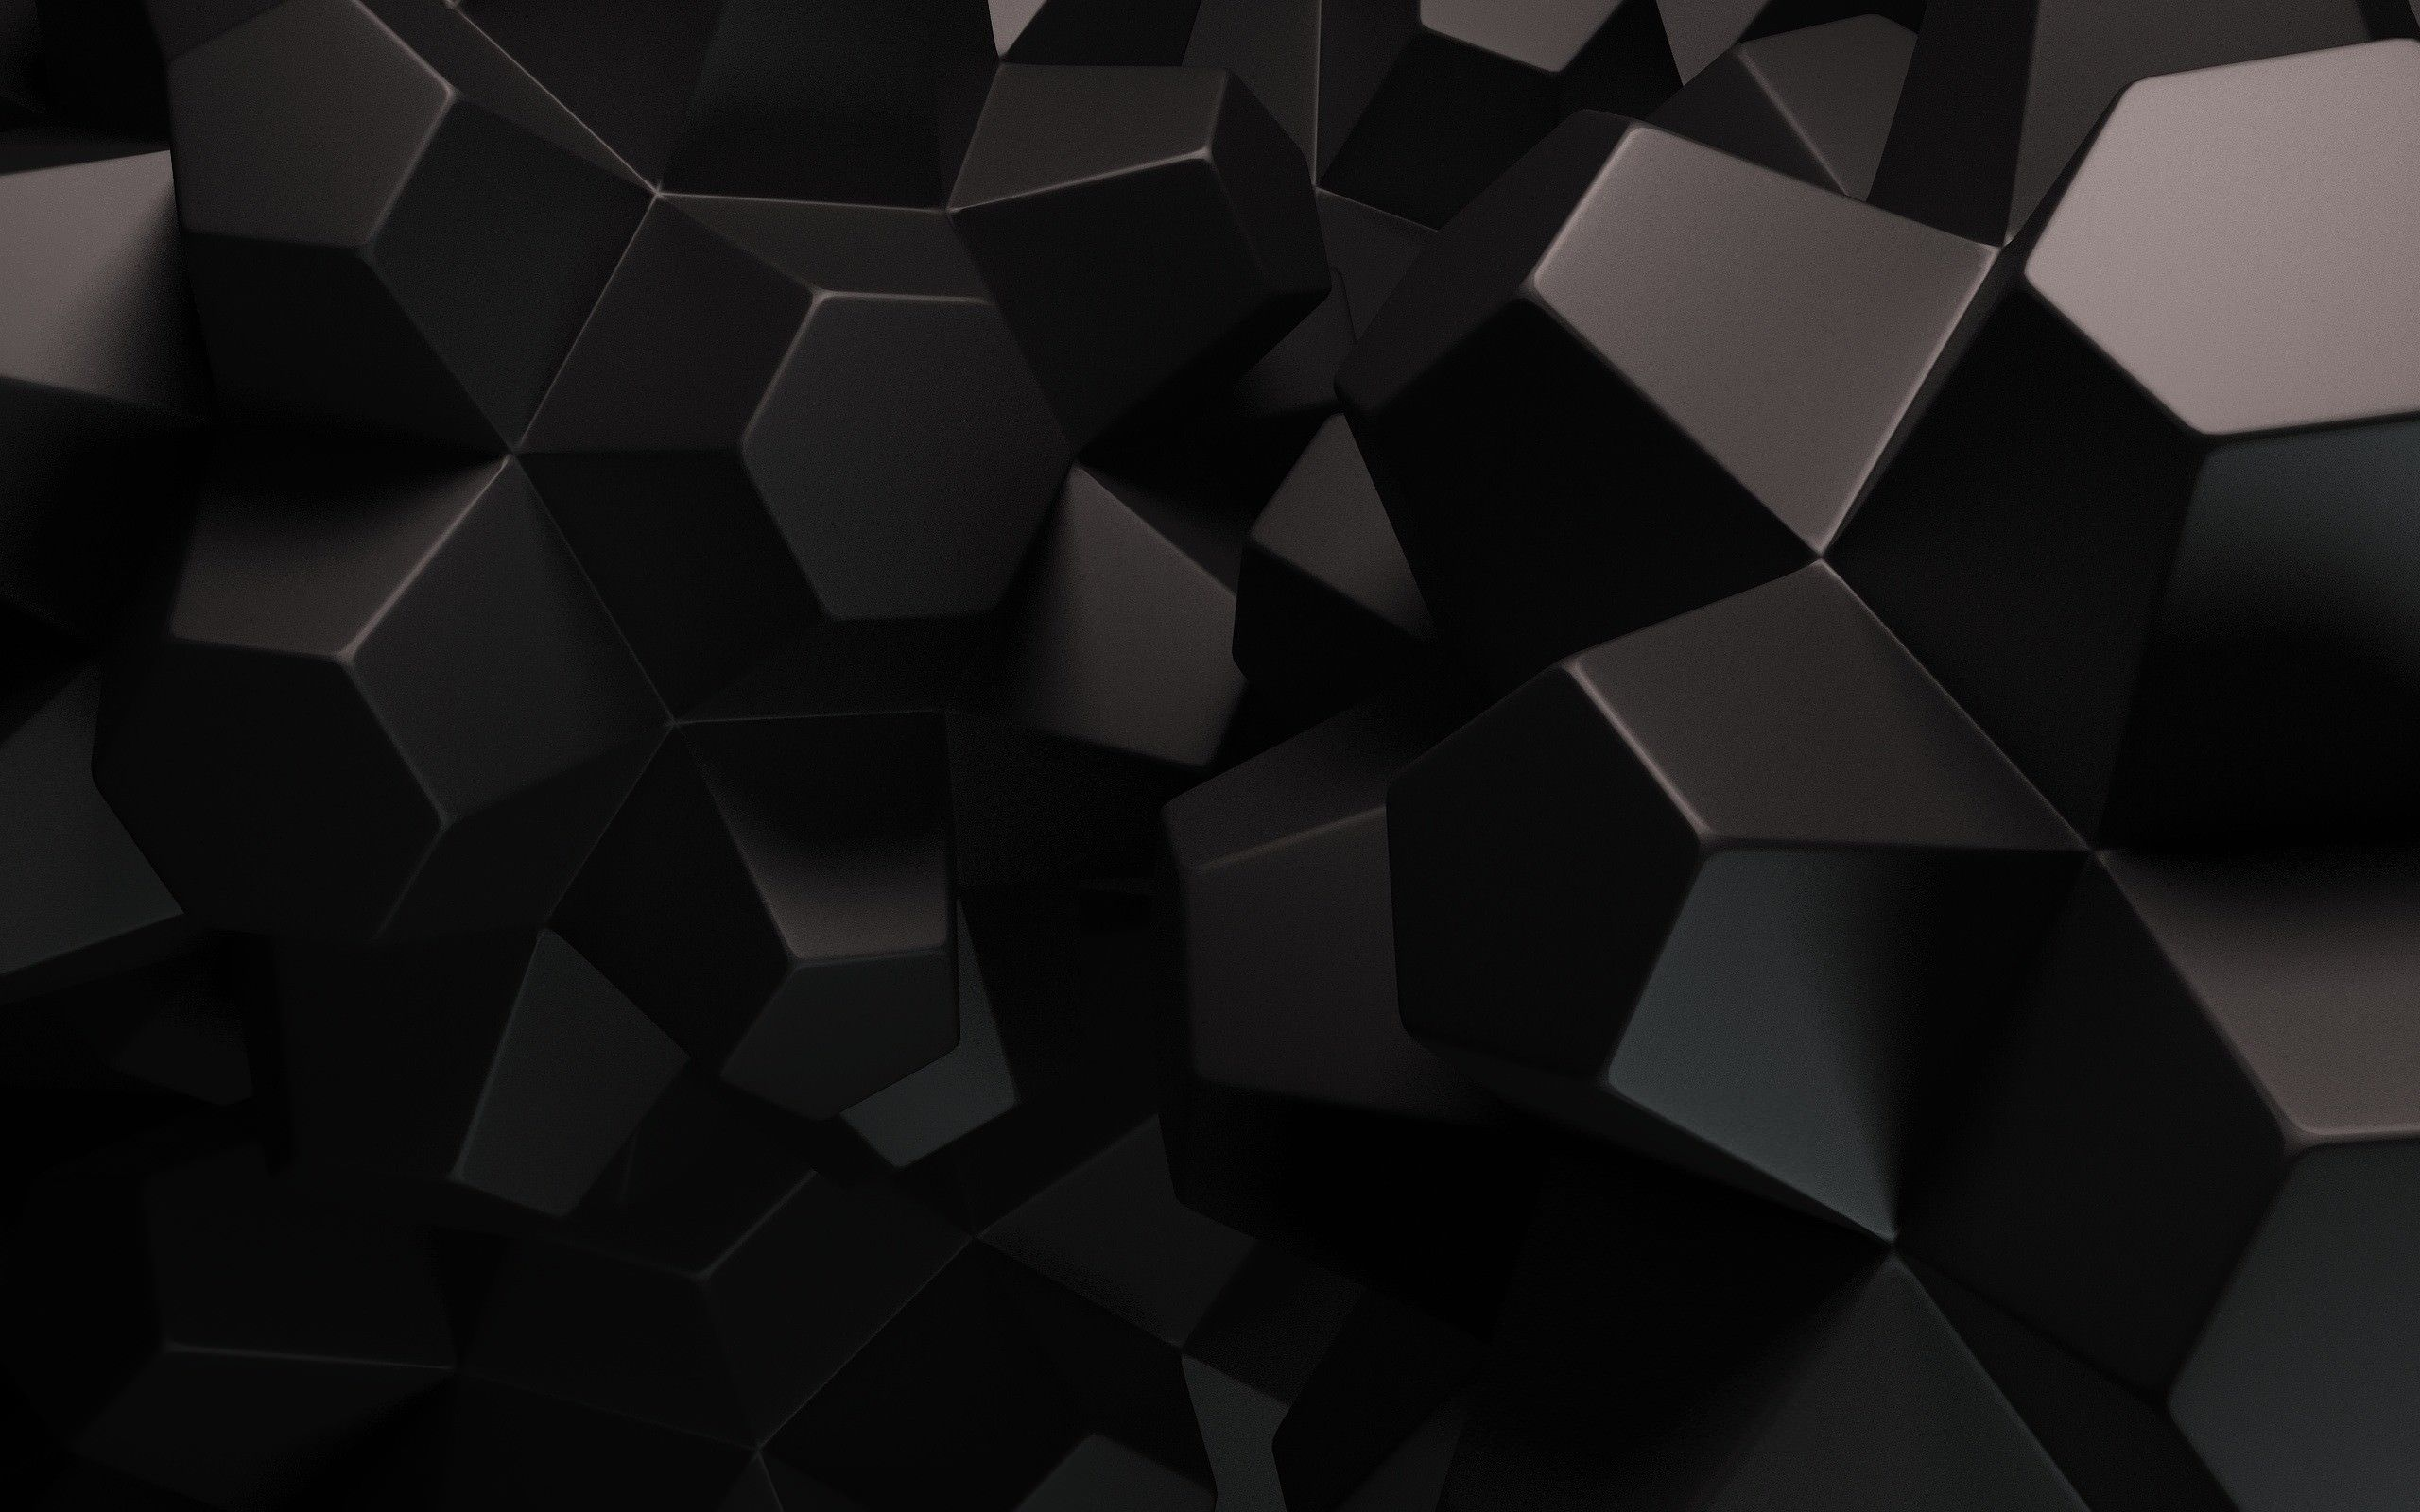 Get Latest Plain Black Wallpaper Iphone for iPhone 11 Pro Max This Month